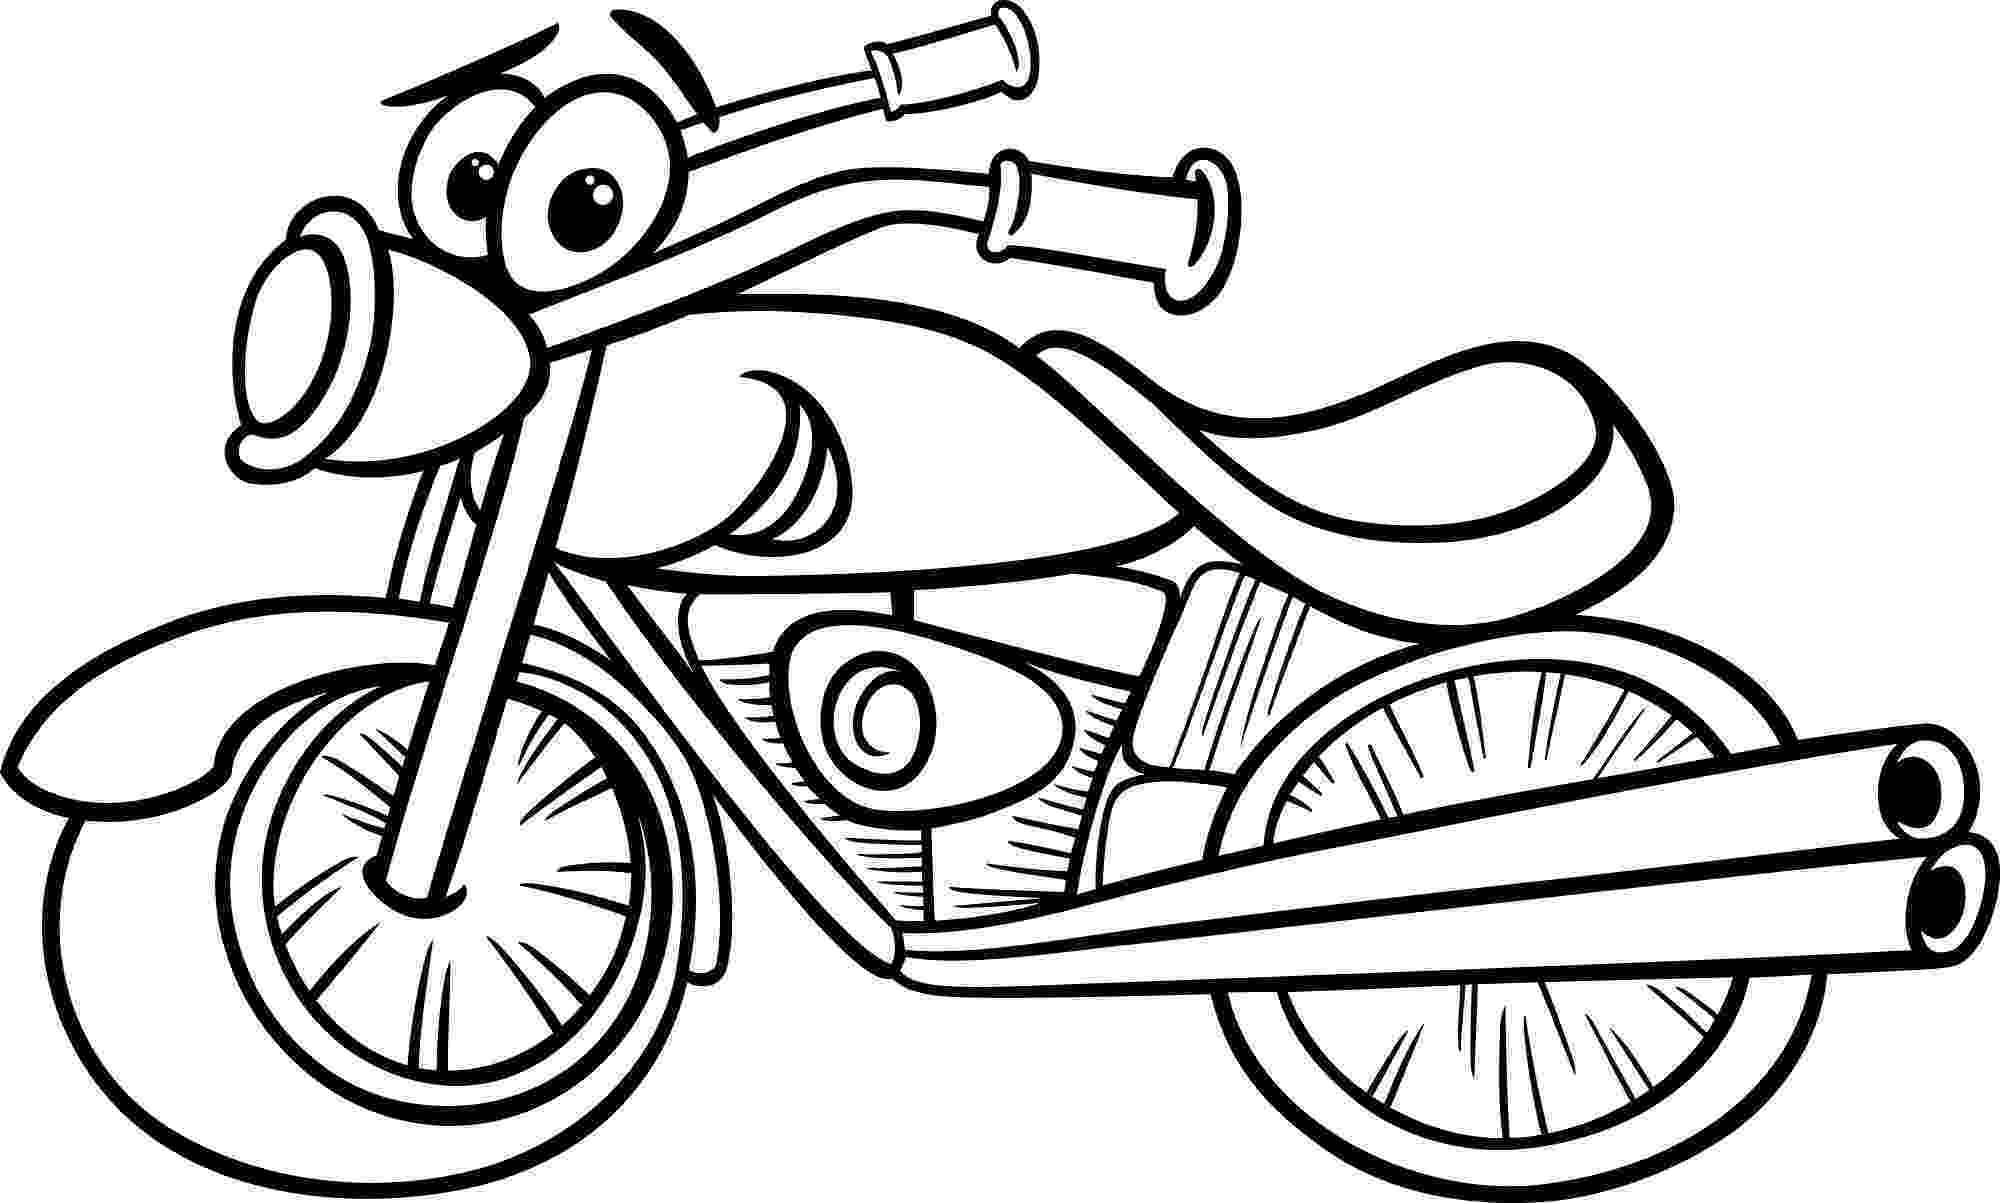 bike coloring pages bicycle coloring pages to download and print for free coloring pages bike